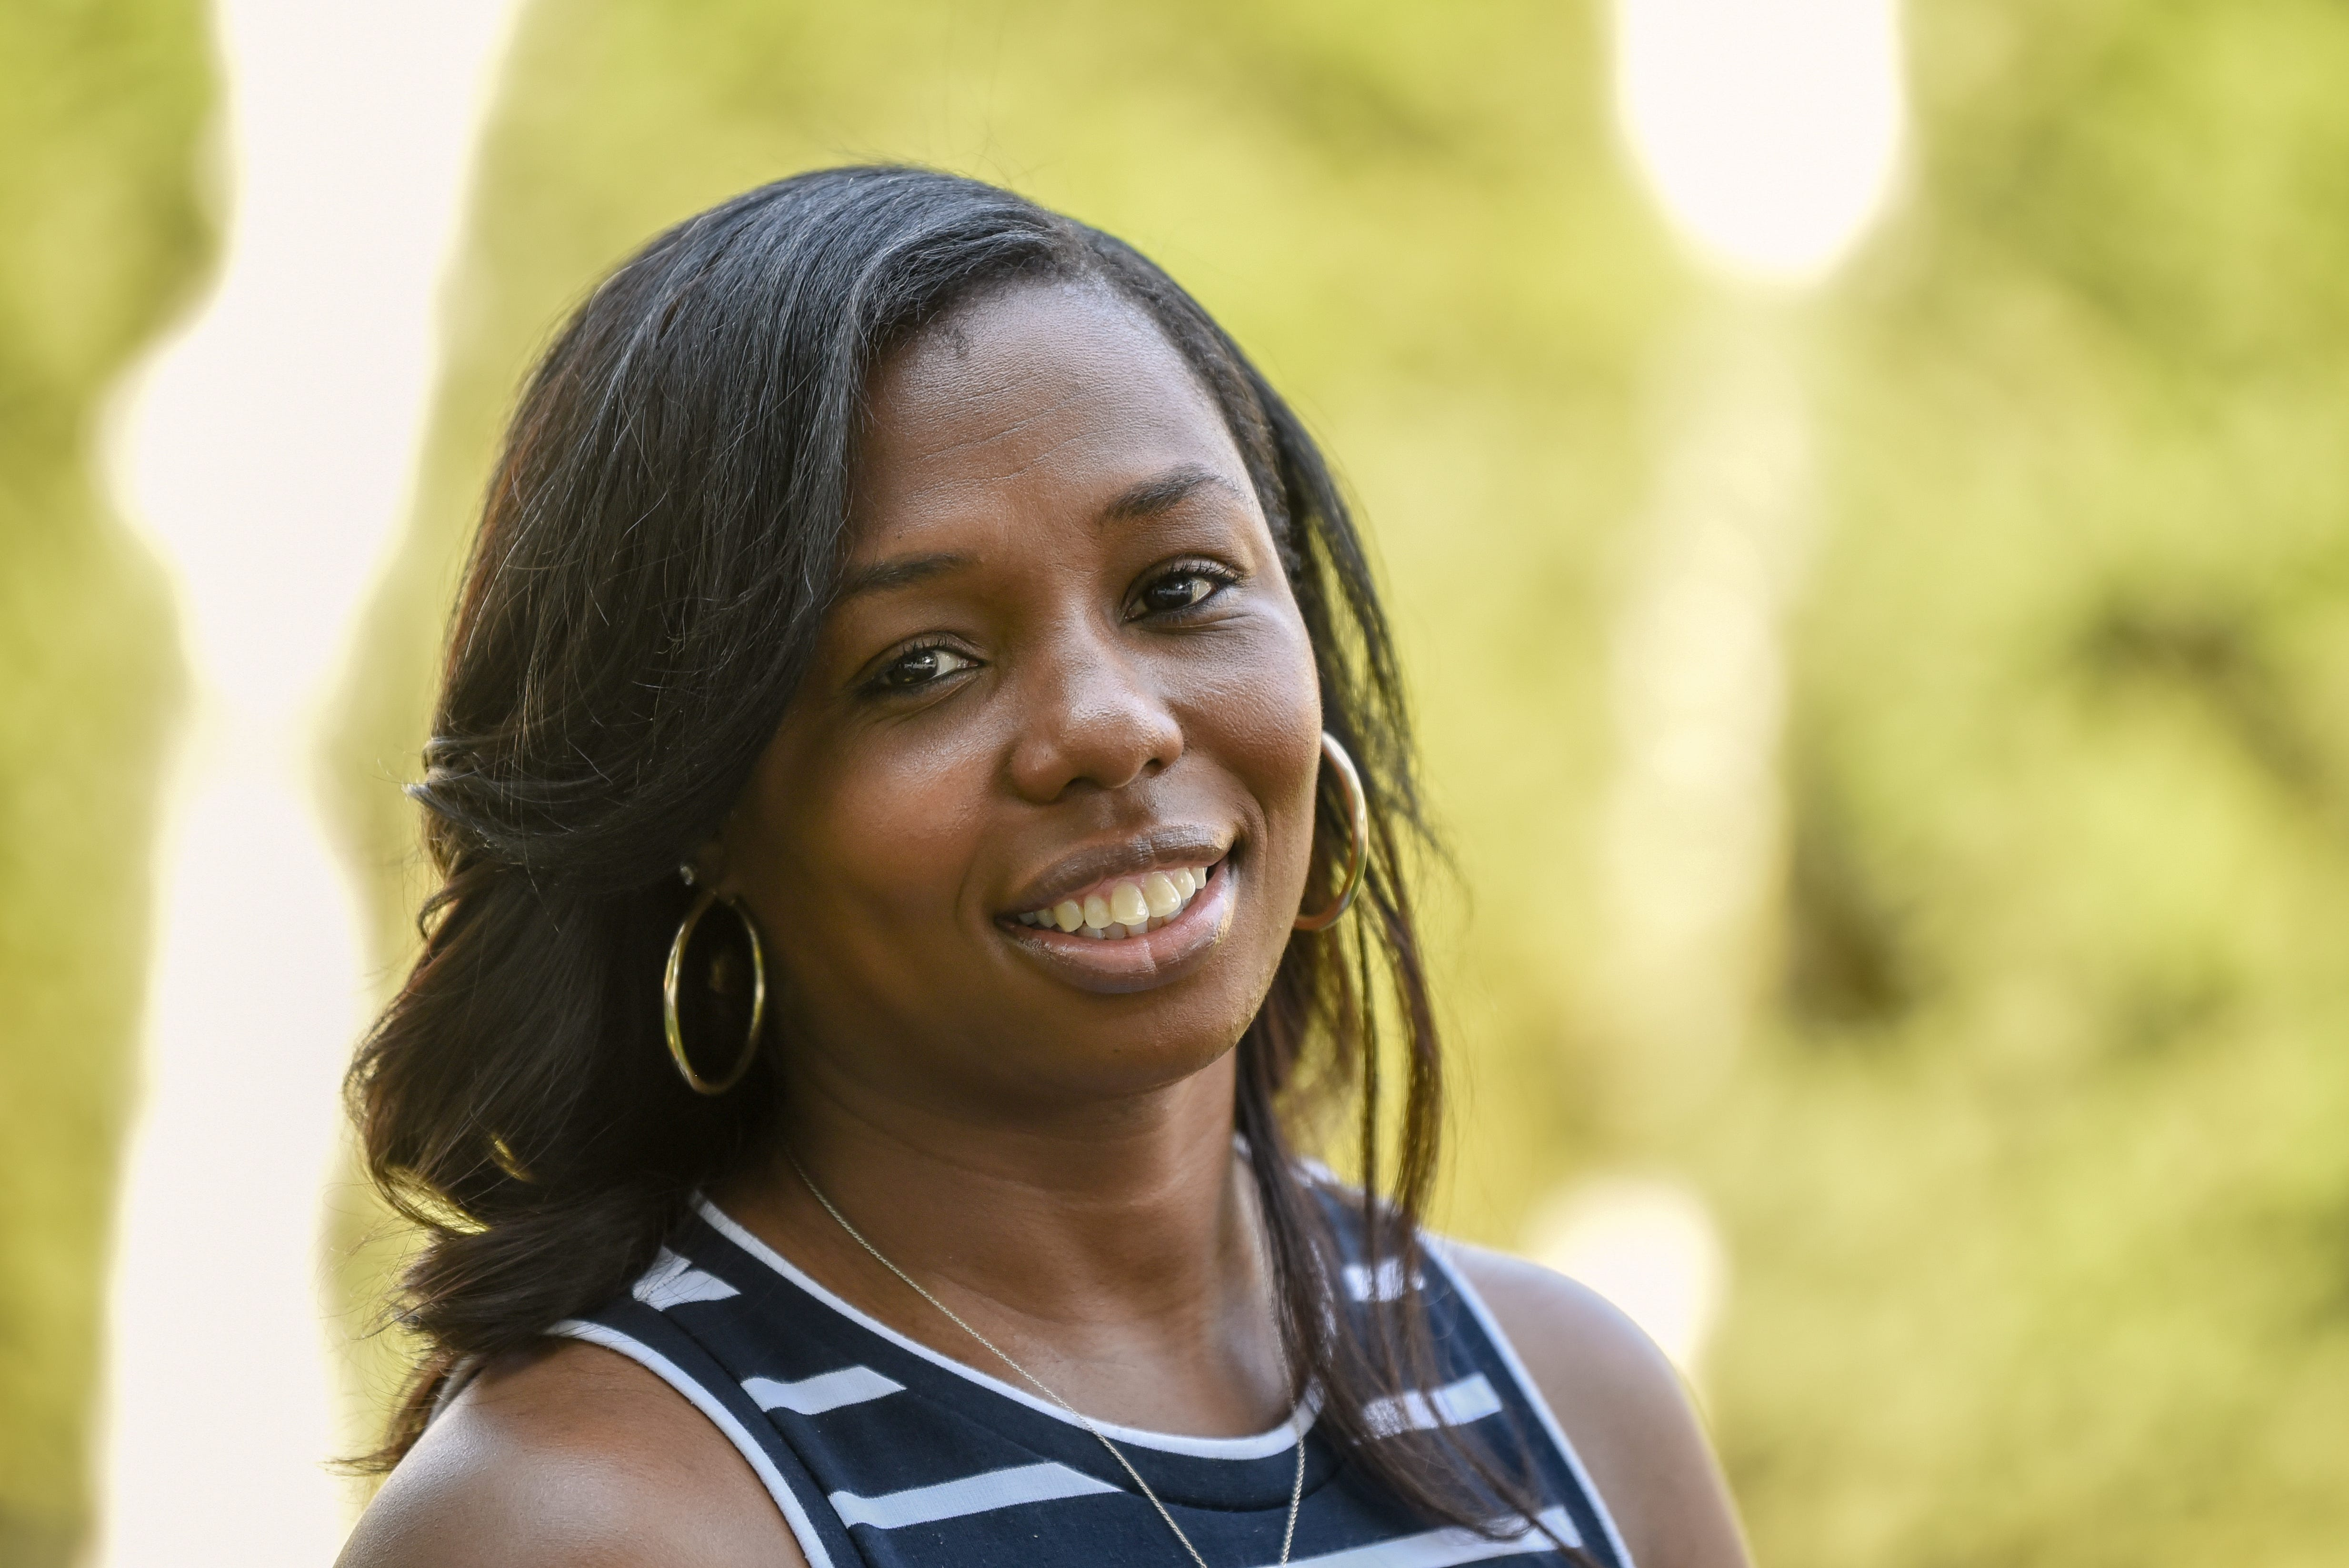 """Iaishia Smith of Avenel, New Jersey, lost her daughter a week after Smith's doctor assured her everything was fine. She had a stillbirth at 38 weeks, just 11 days before her due date. """"It was the worst day of my life,"""" Smith said."""